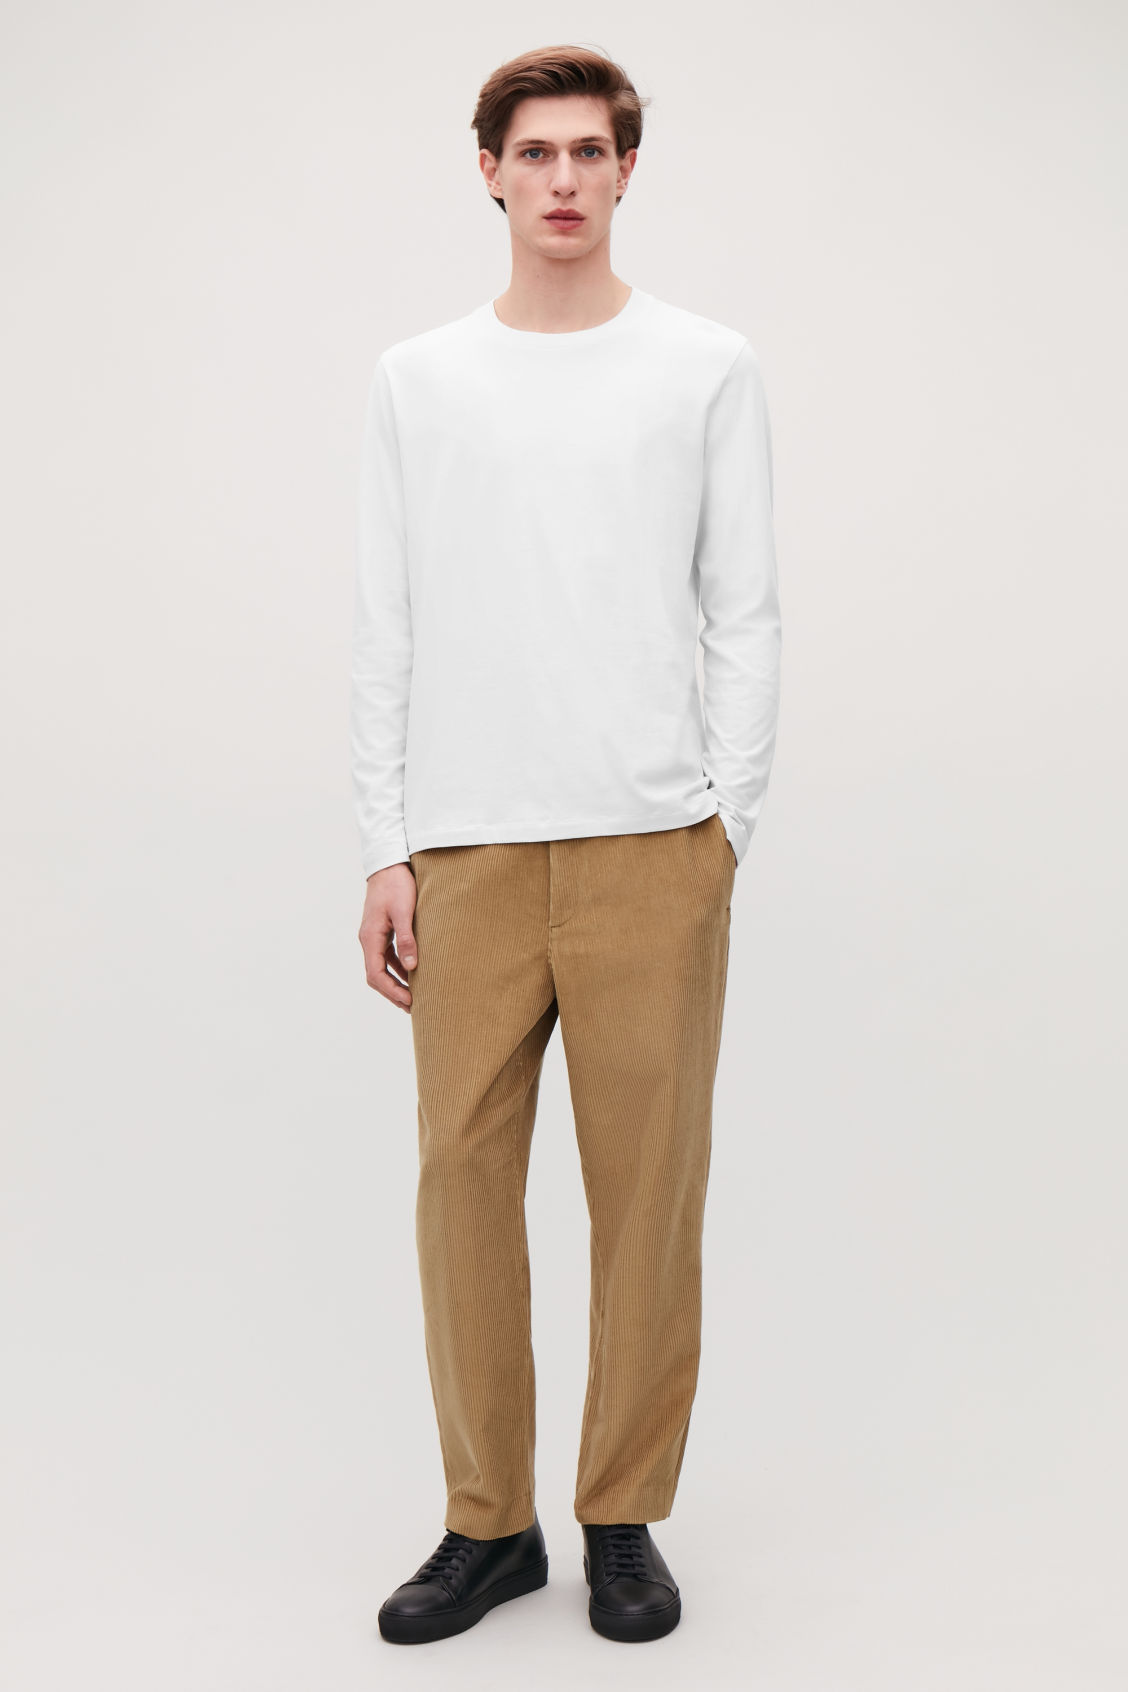 Detailed image of Cos long-sleeved cotton t-shirt  in beige